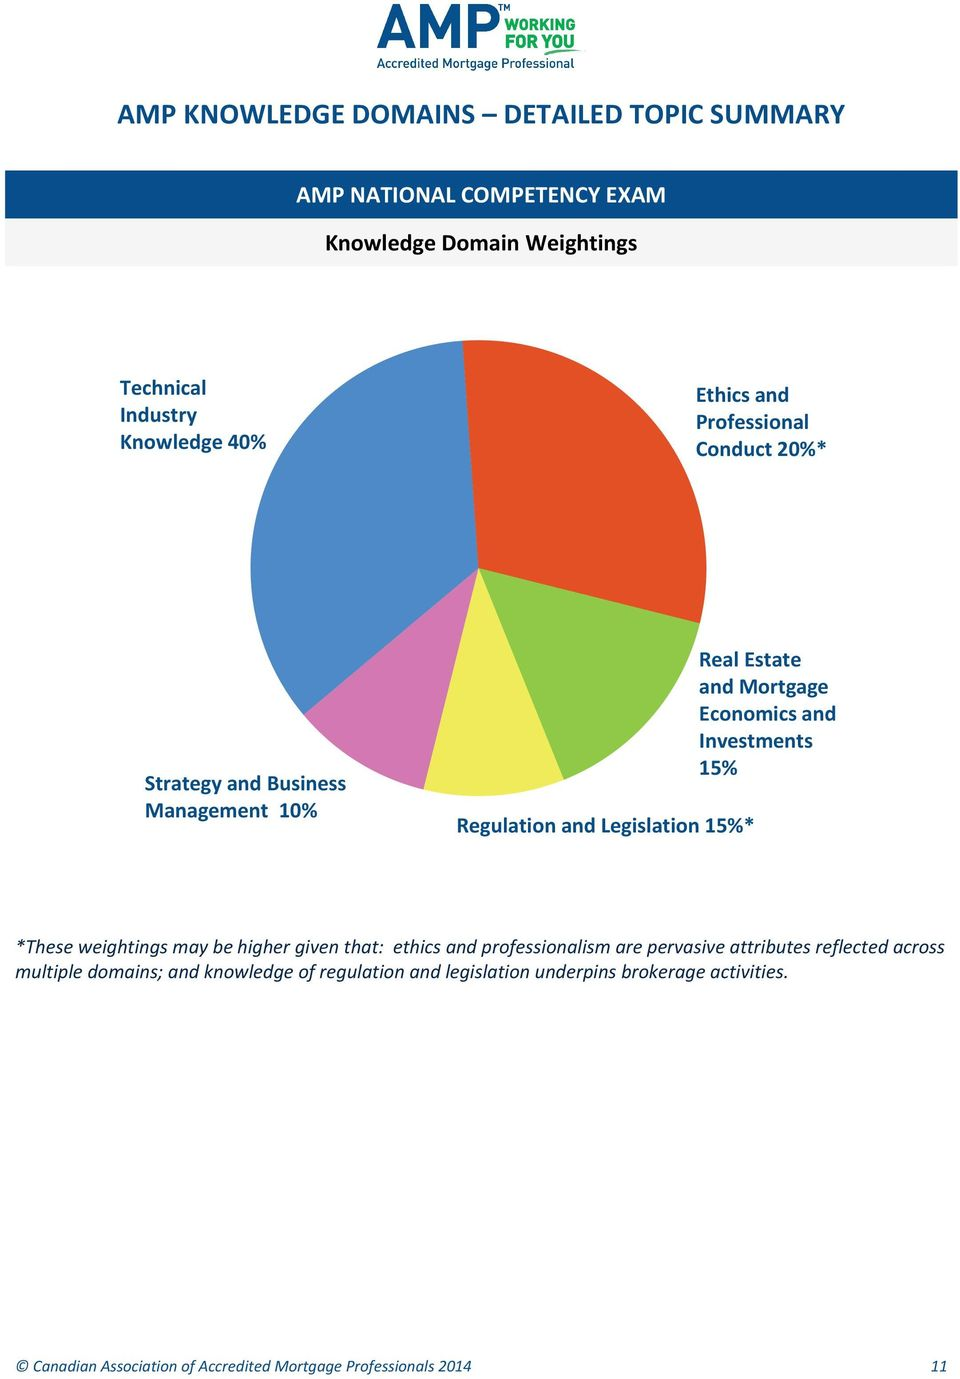 weightings may be higher given that: ethics and professionalism are pervasive attributes reflected across multiple domains; and